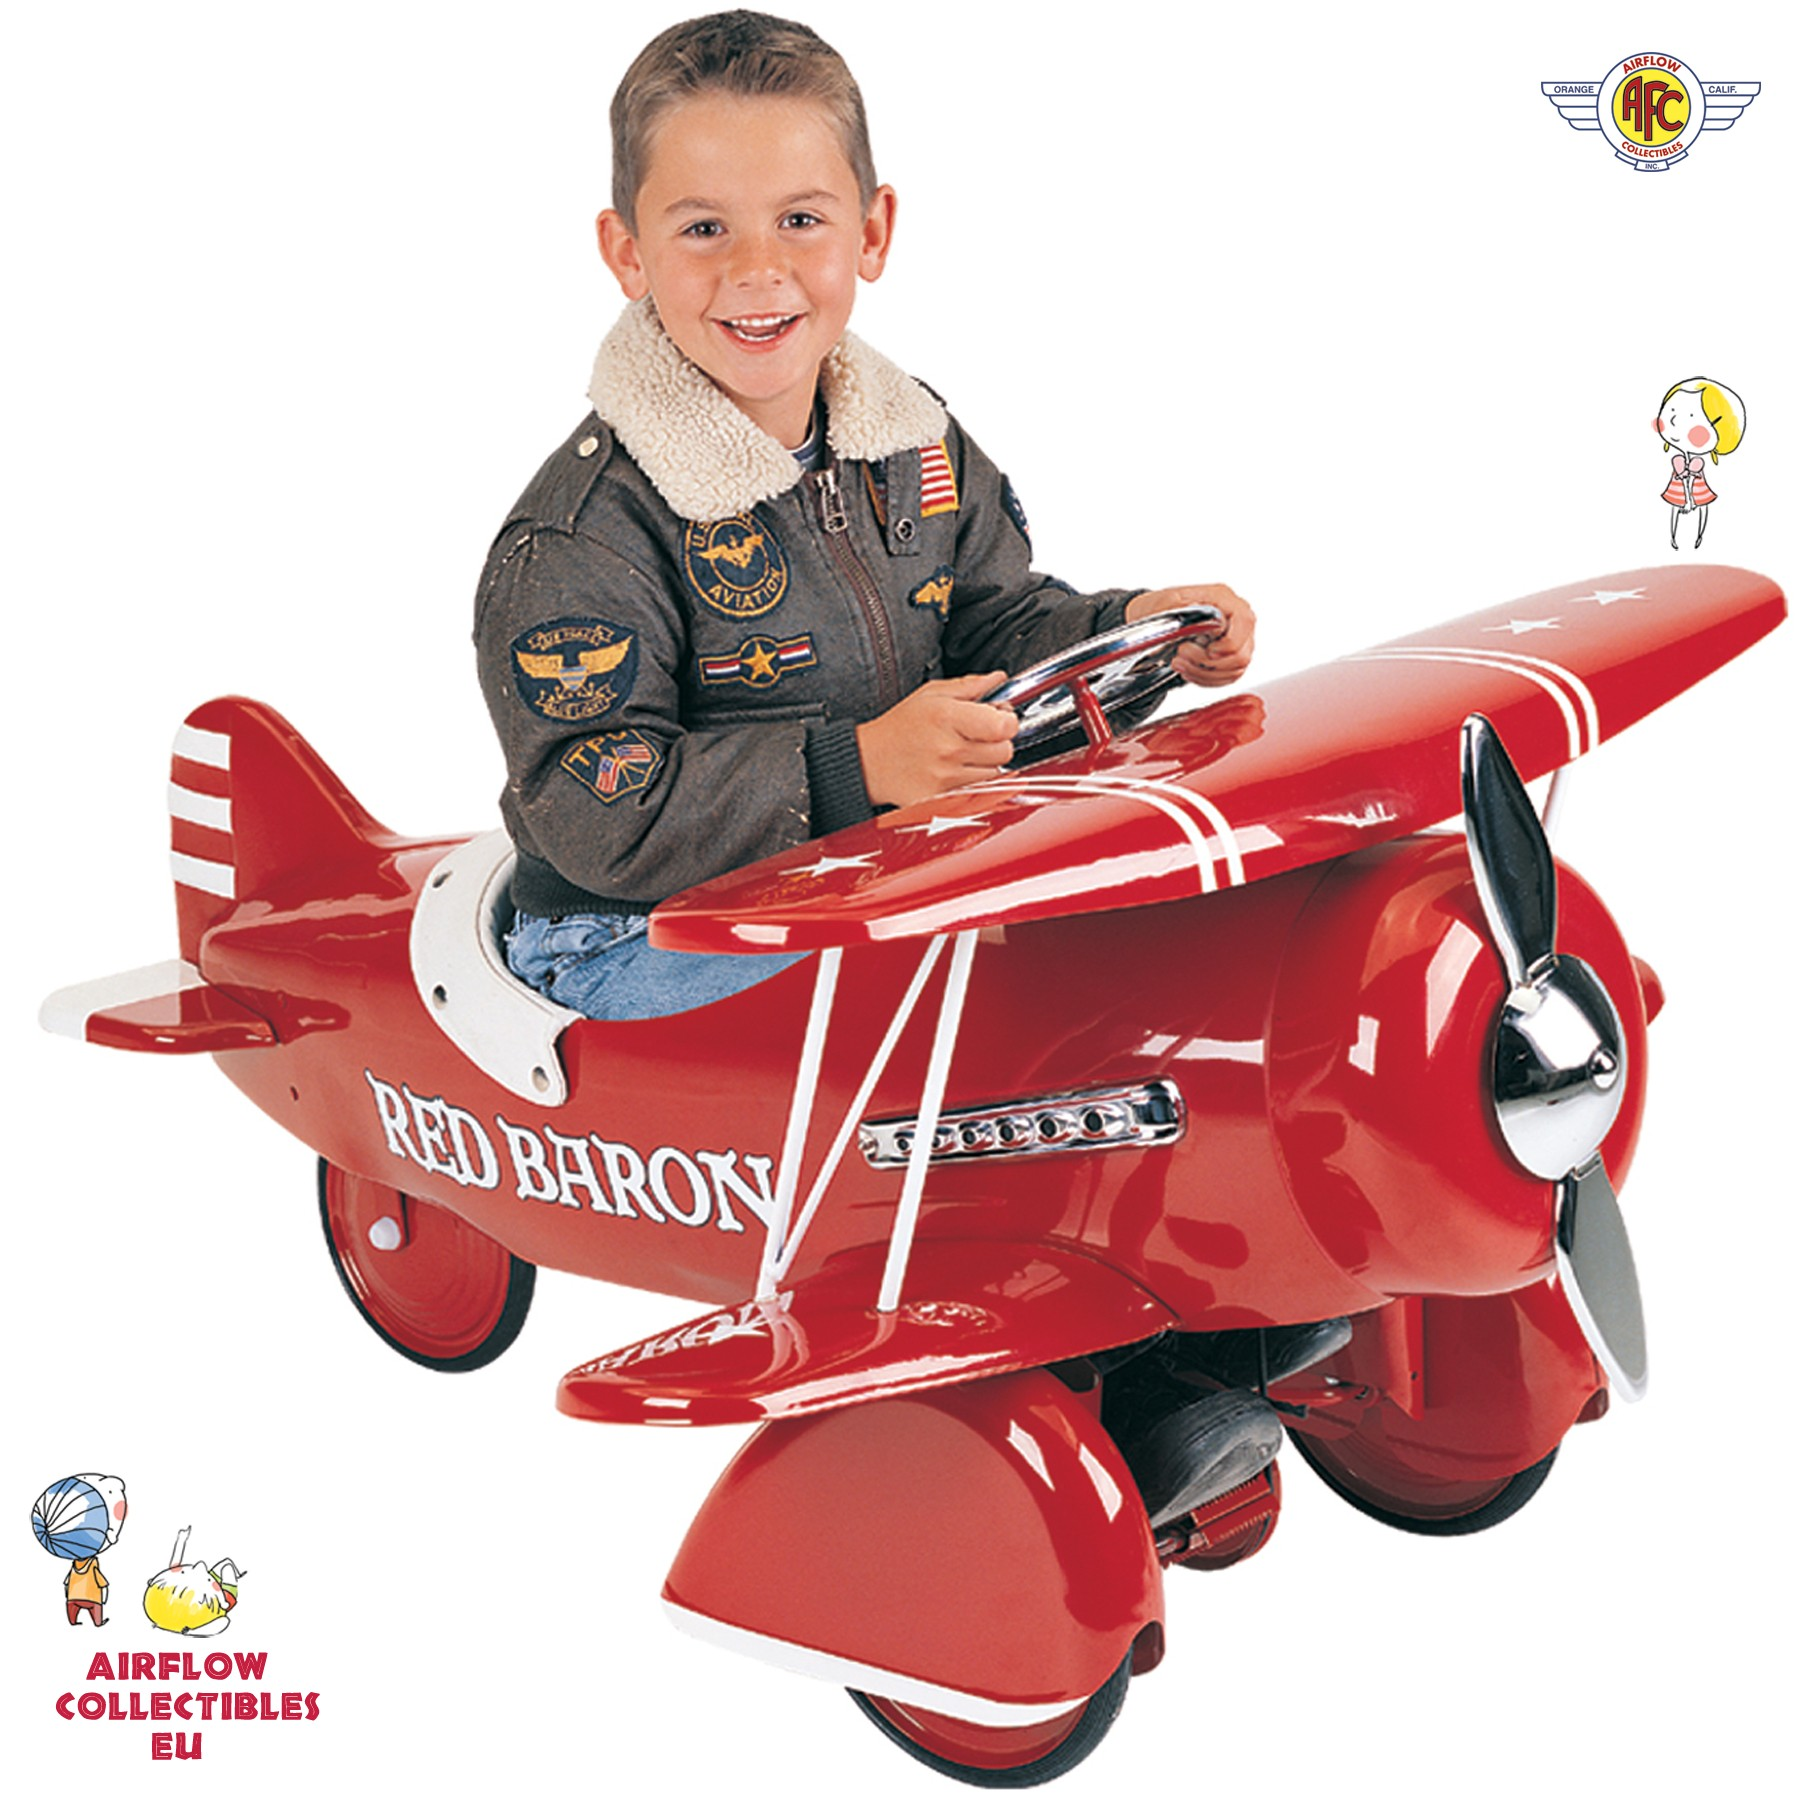 MORGAN CYCLE KIDS GREY STEEL ARMY 44 AIRPLANE FOOT TO FLOOR RIDE-ON TOY NEW